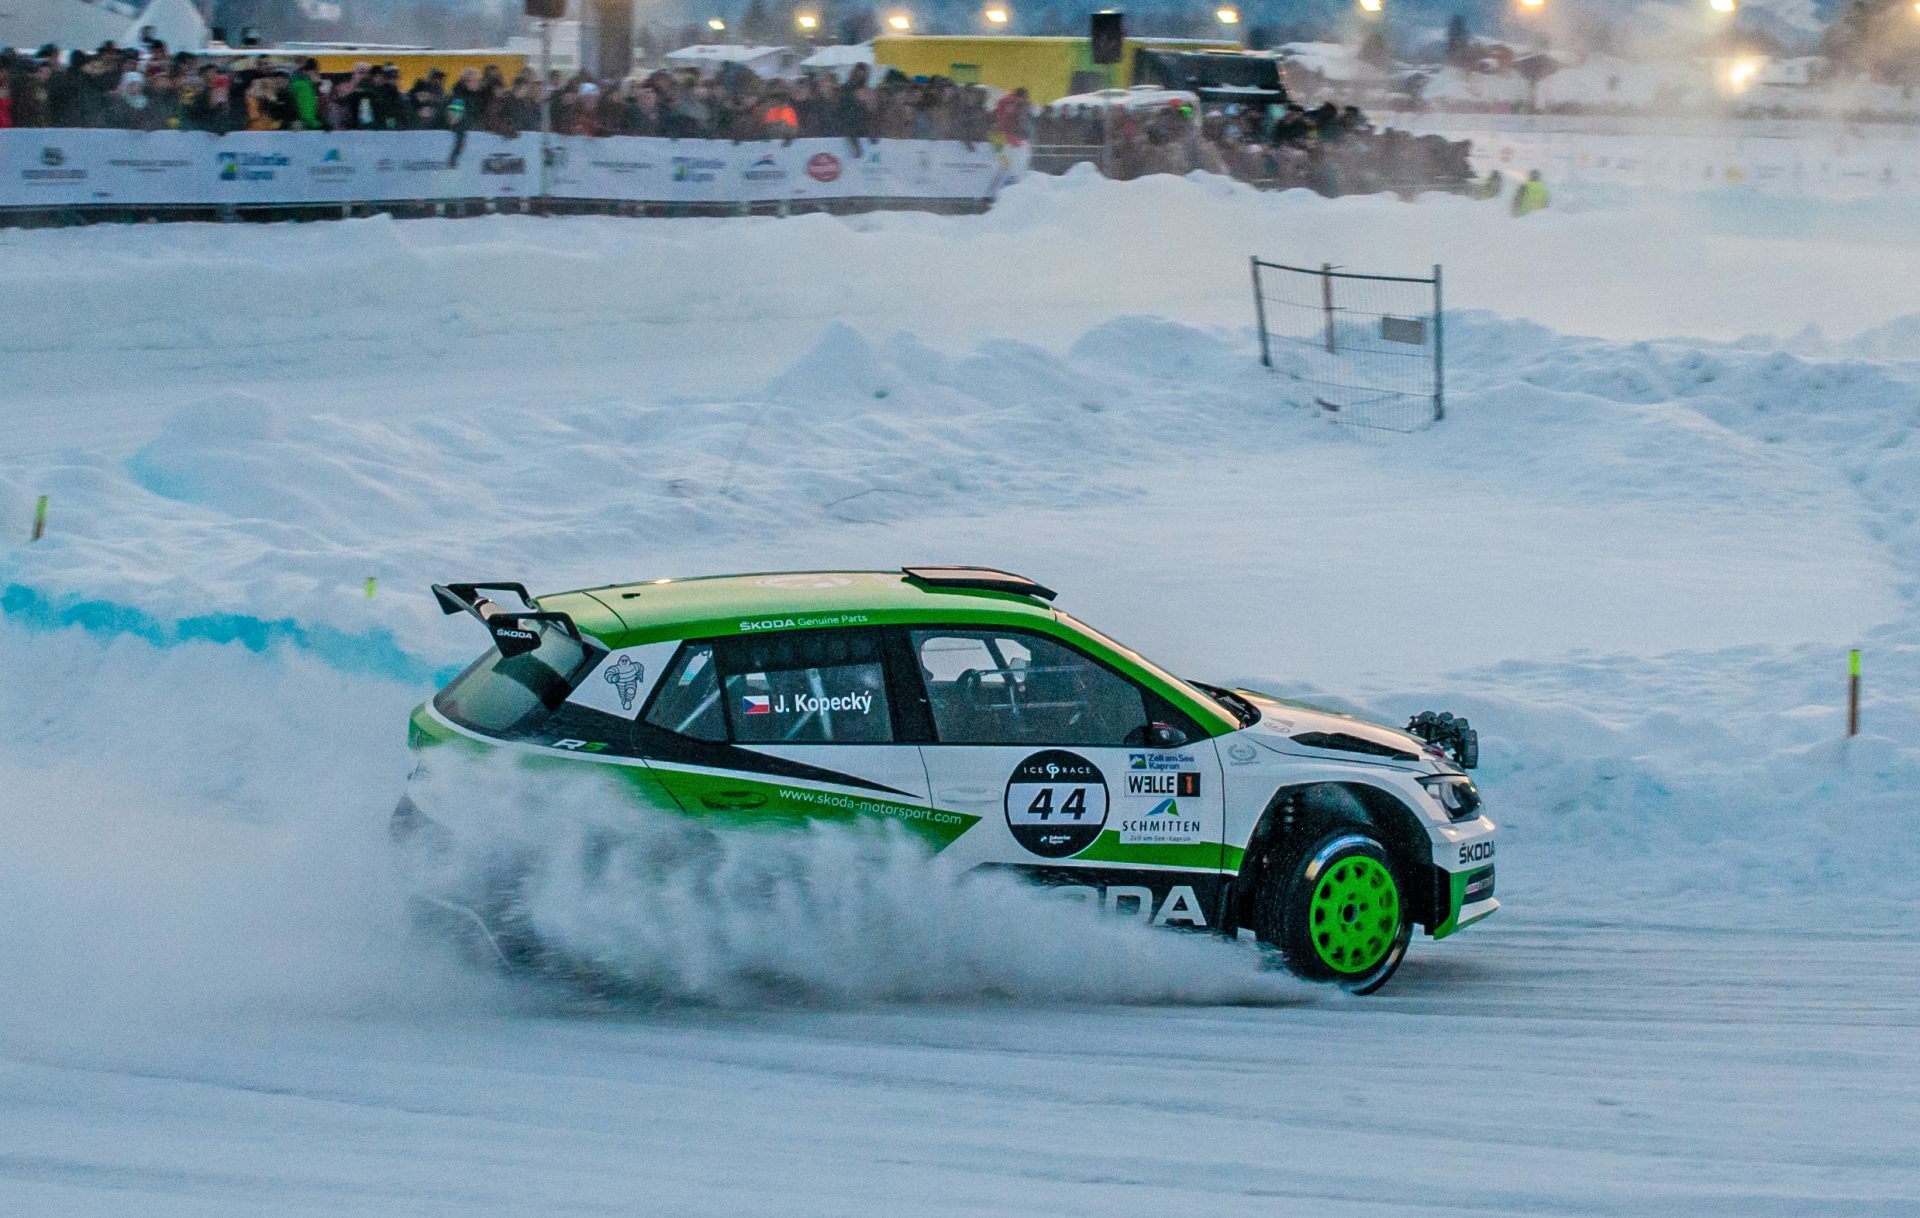 FABIA R5 and Jan Kopecký Dominate on the Ice | GP Ice Race in Zell am See